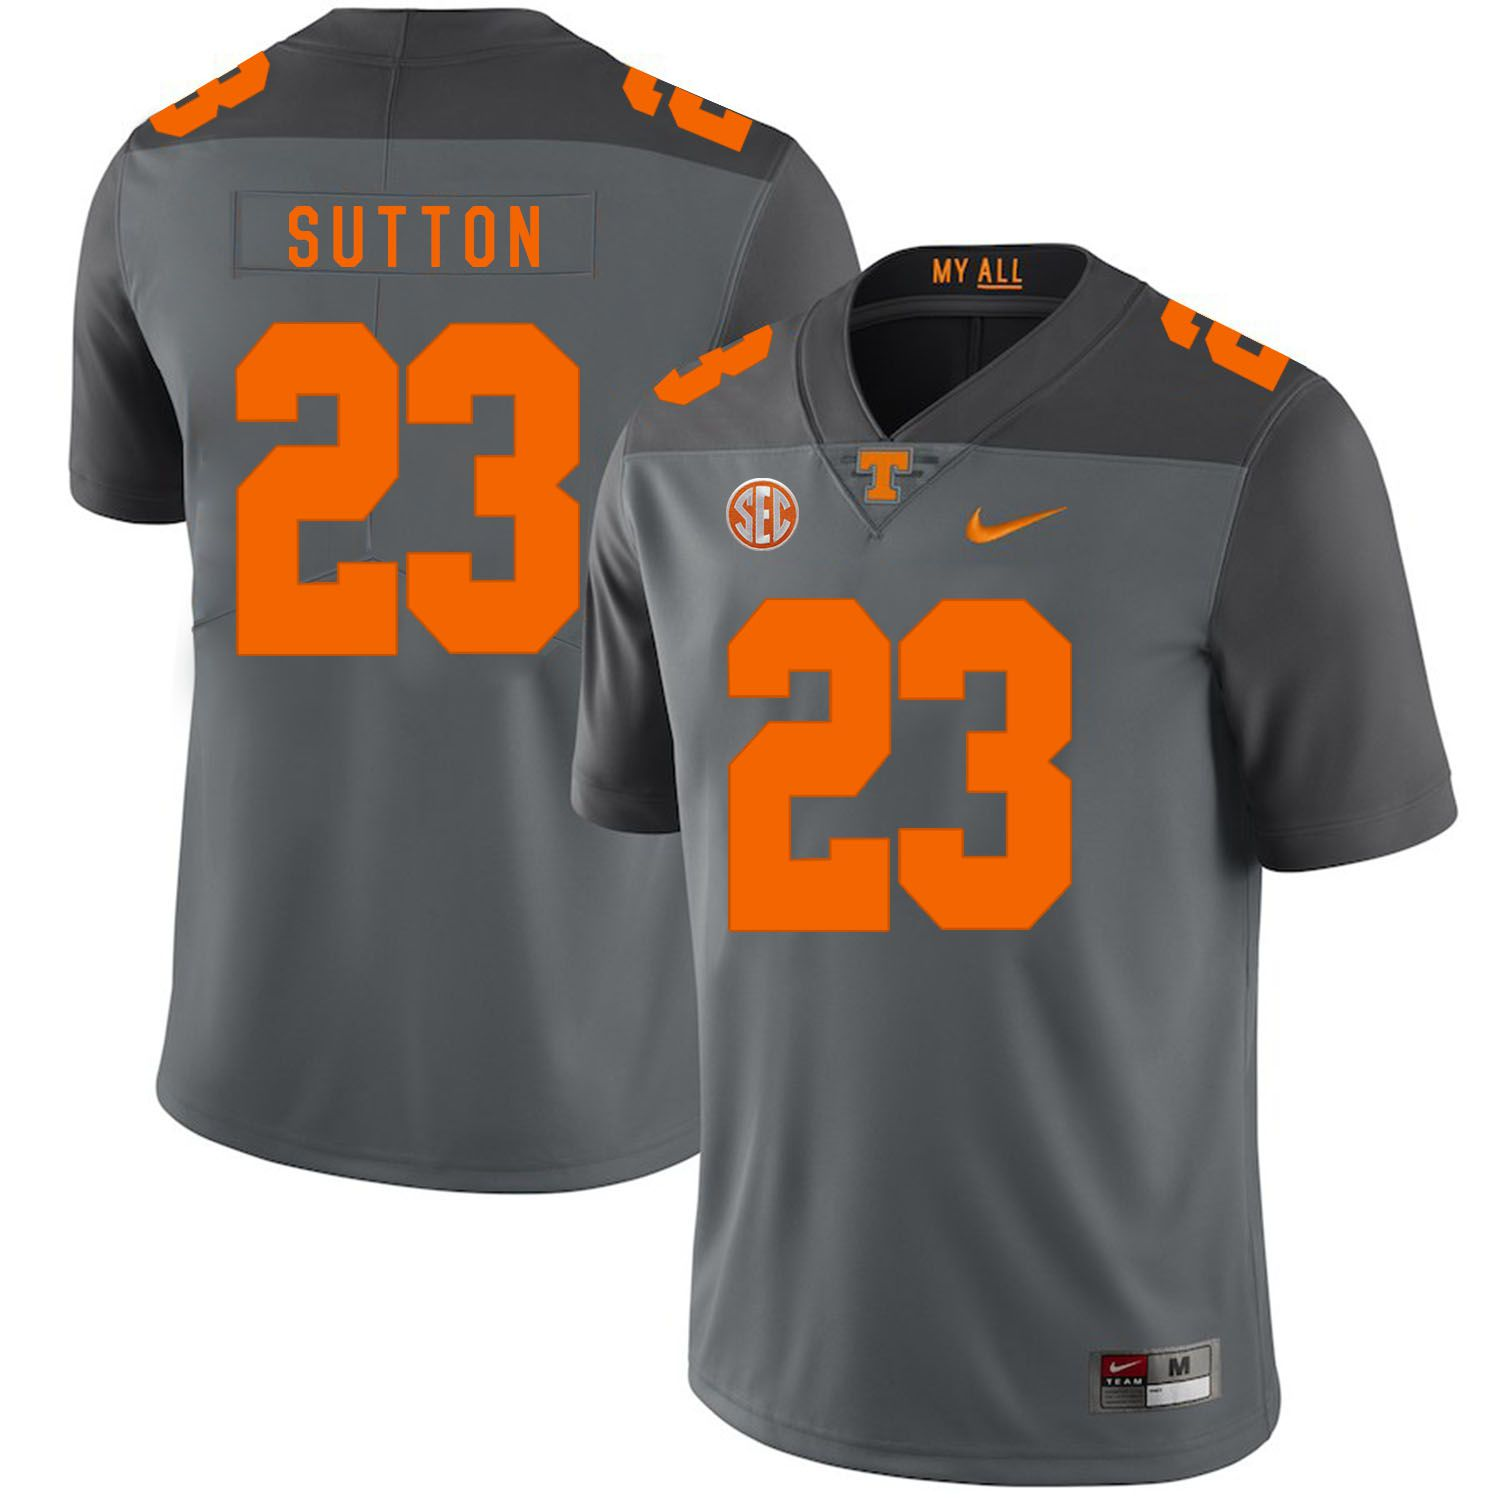 Men Tennessee Volunteers 23 Sutton Grey Customized NCAA Jerseys